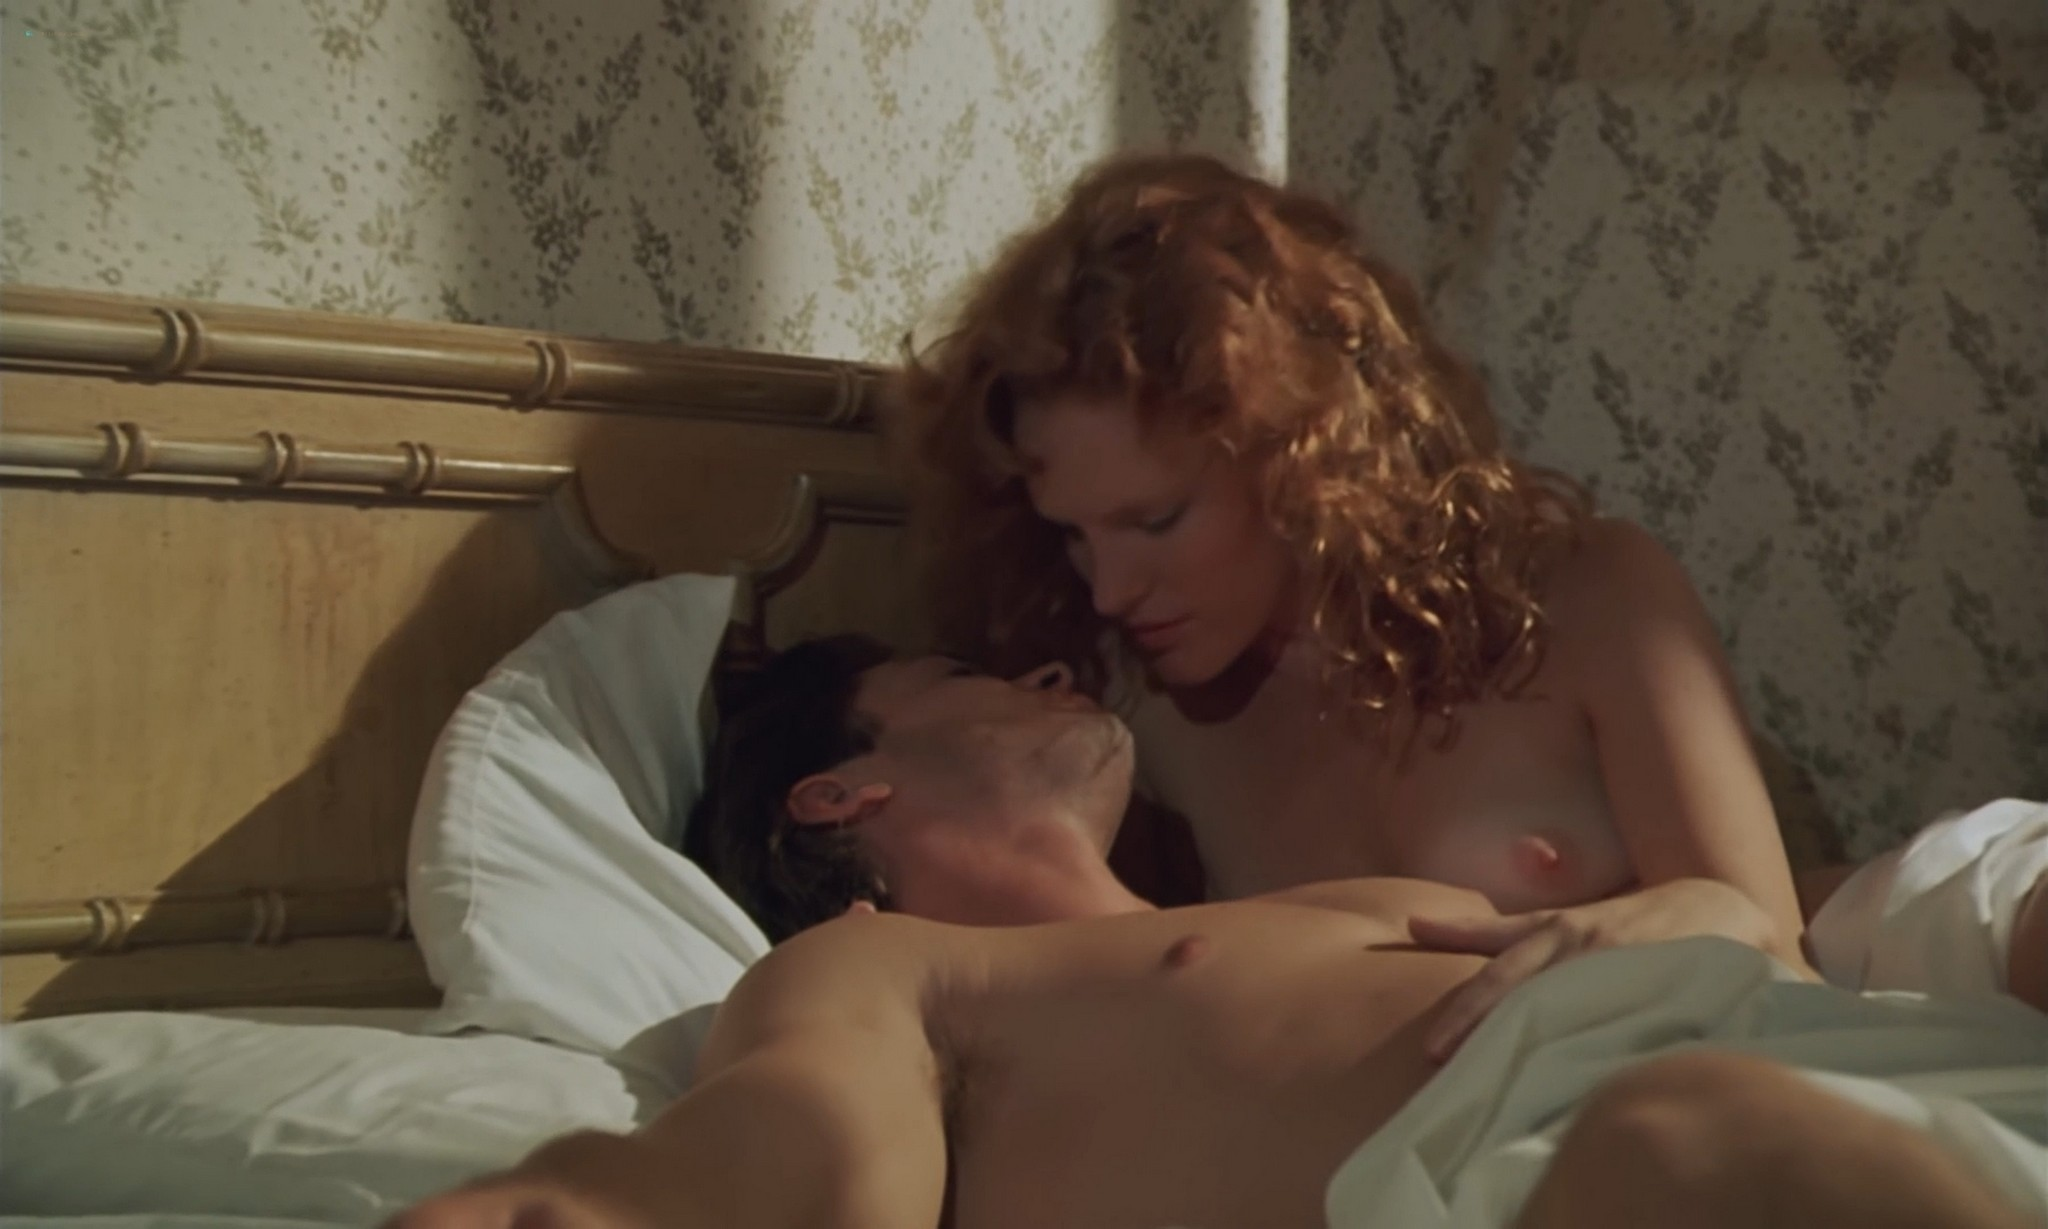 Victoria Prouty nude and sex in the shower American Rickshaw 1989 1080p BluRay 16